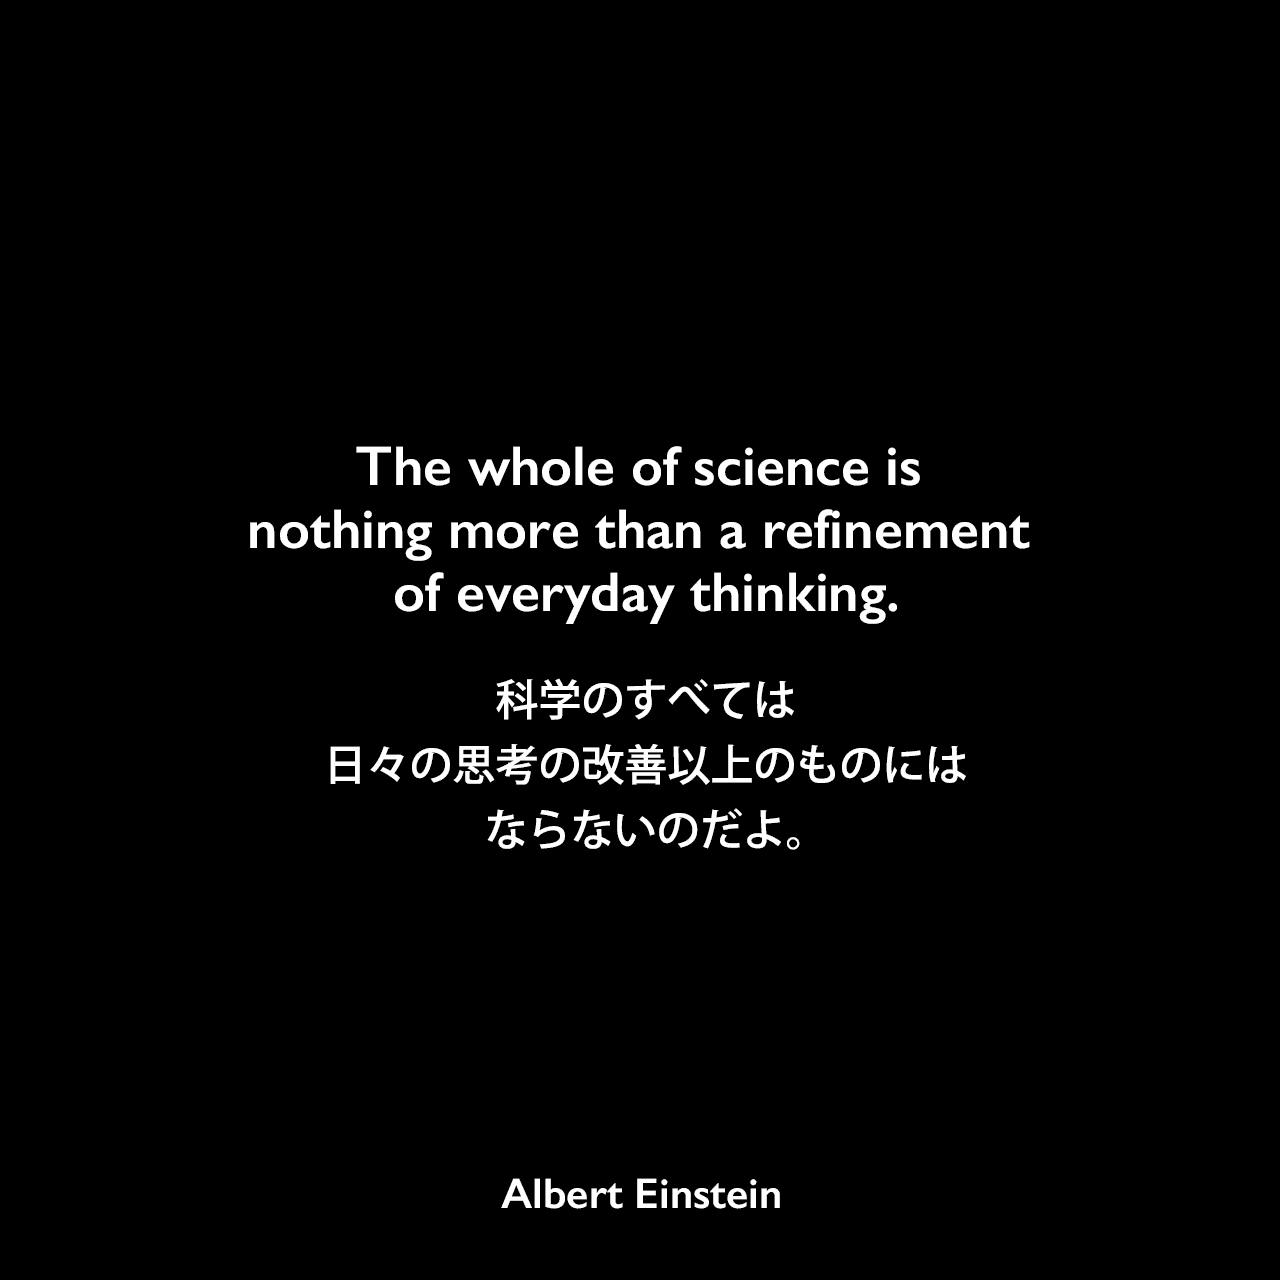 The whole of science is nothing more than a refinement of everyday thinking.科学のすべては、日々の思考の改善以上のものにはならないのだよ。- Journal of the Franklin Instituteの「物理学と現実」(1936年3月)よりAlbert Einstein